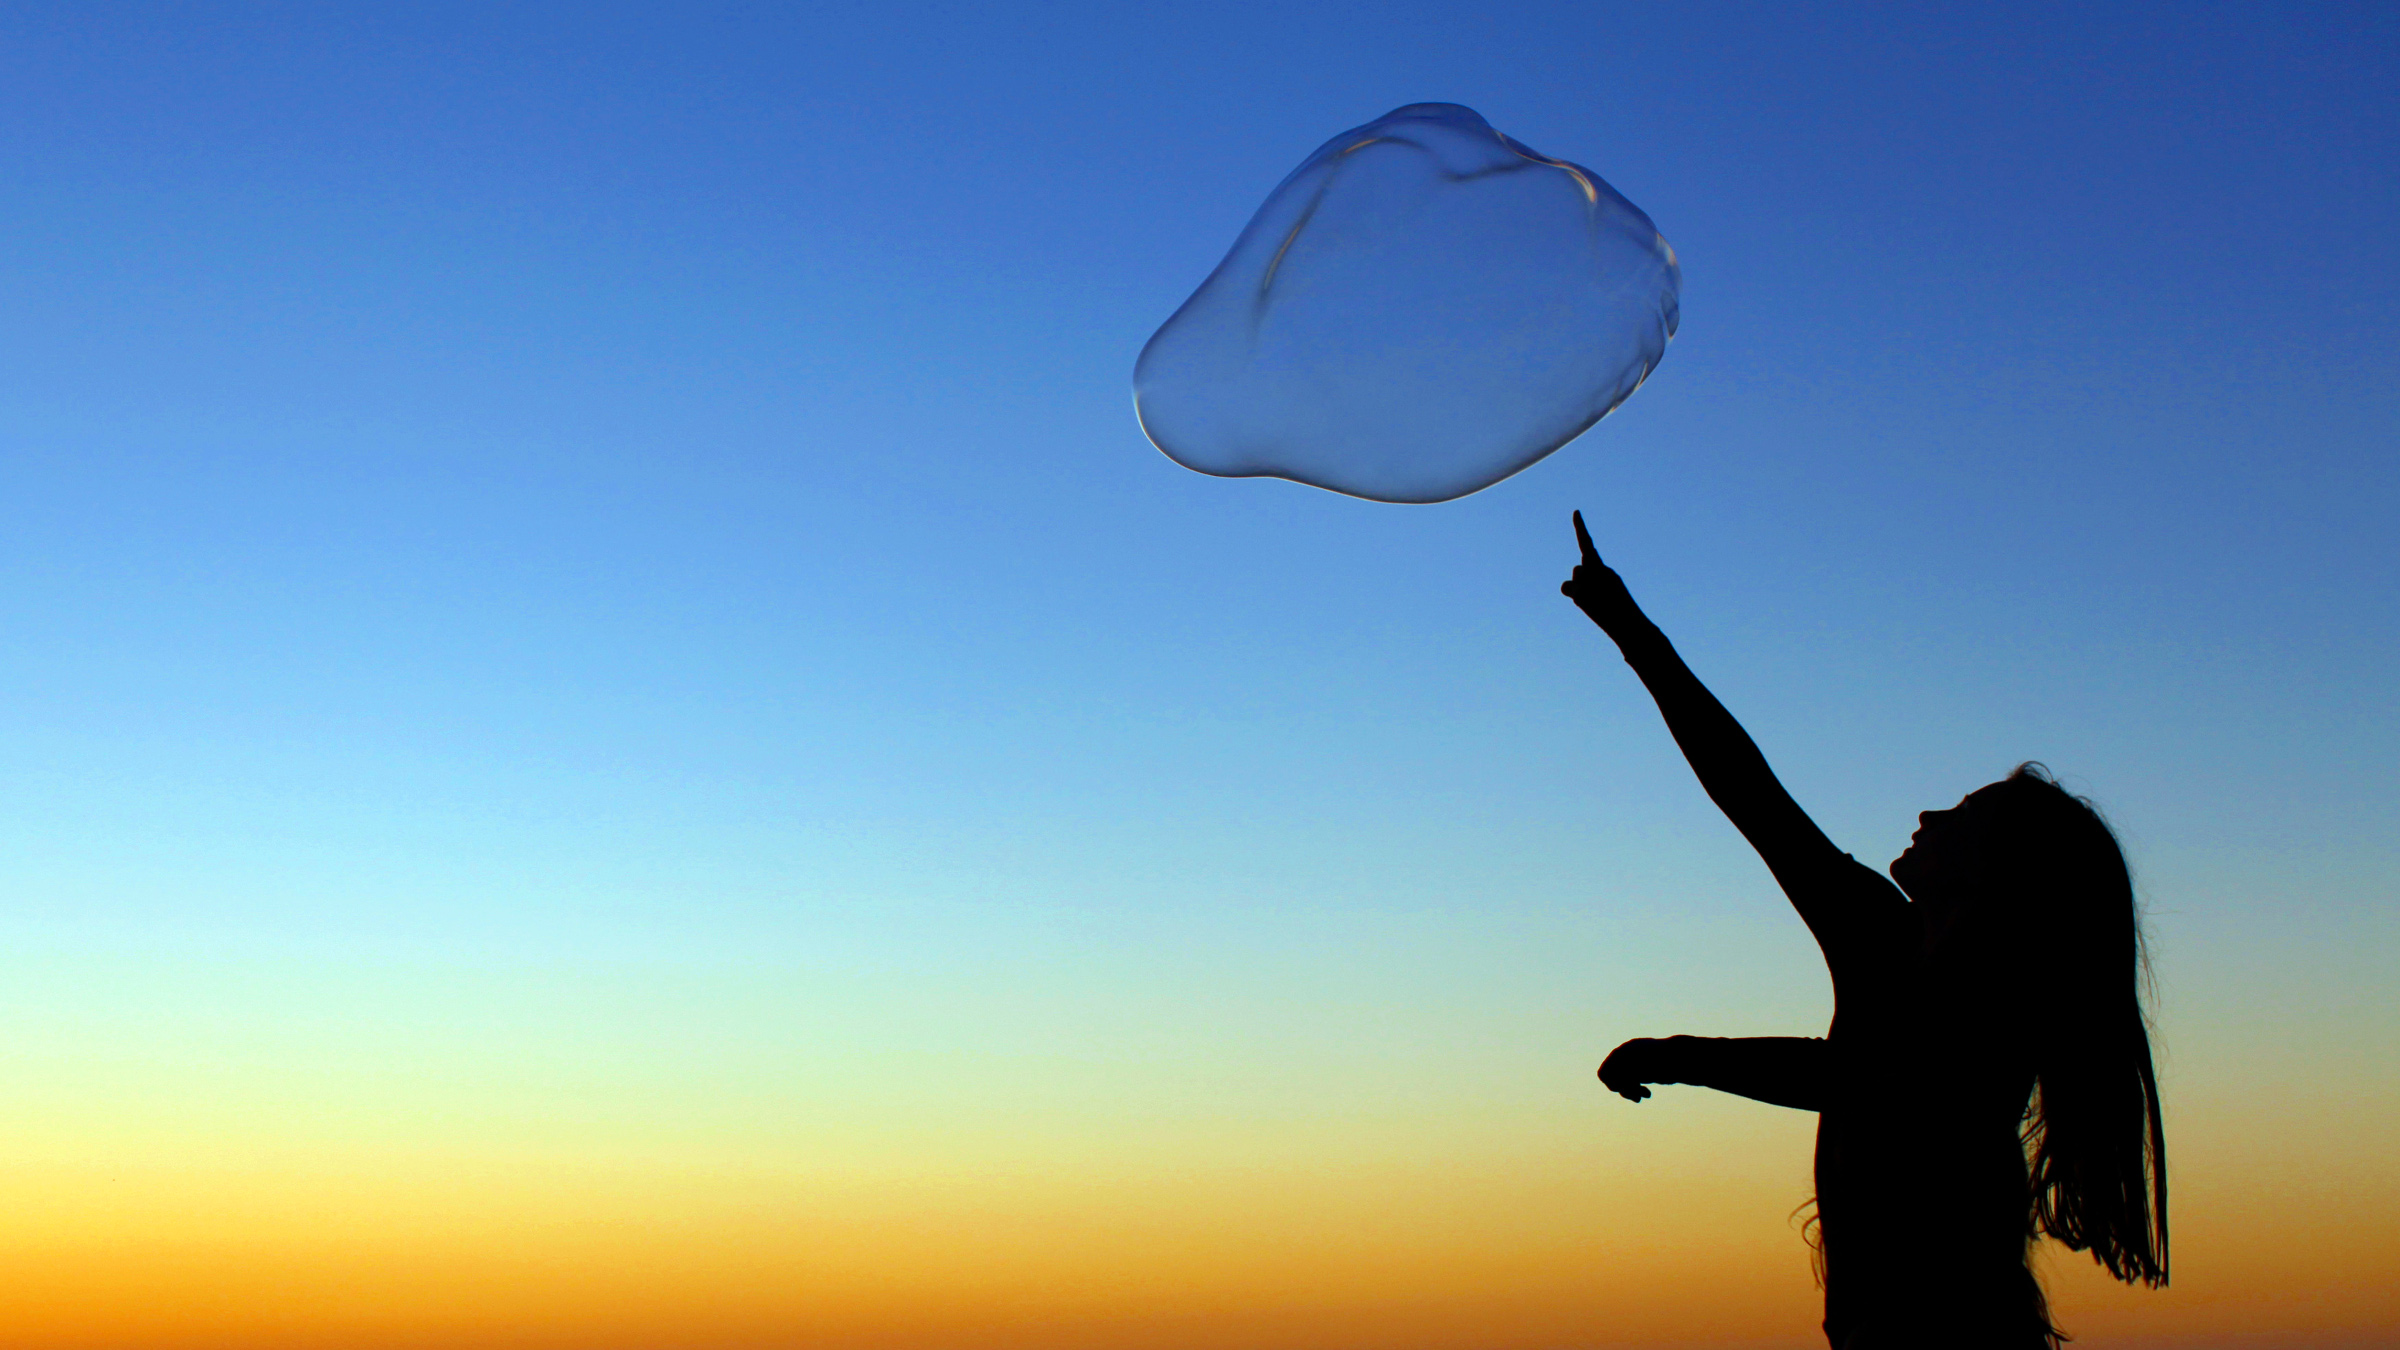 A girl plays with a giant bubble as the sun sets at Moonlight Beach in Encinitas, California June 30, 2011. Picture taken June 30.